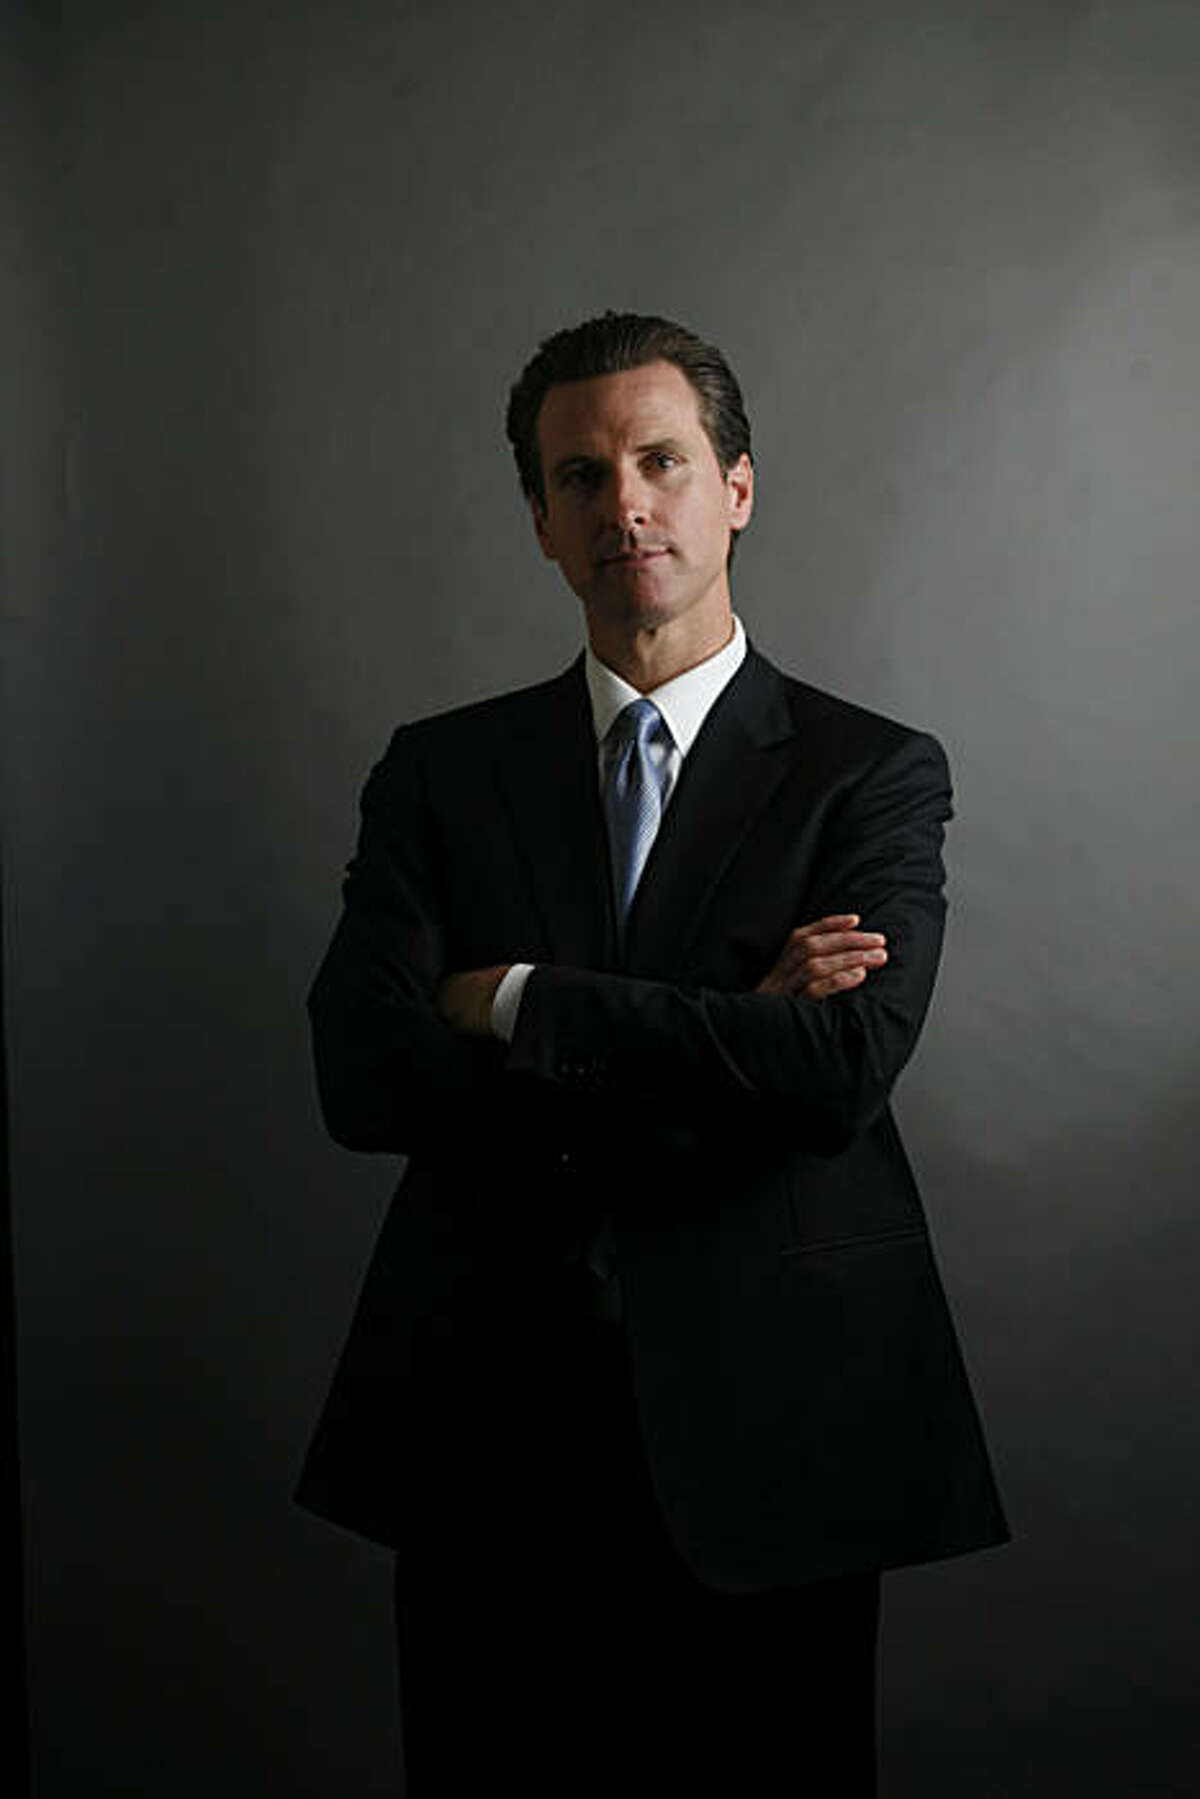 Mayor Gavin Newsom has been running the city of San Francisco for two terms and hopes to win again in the November elections.